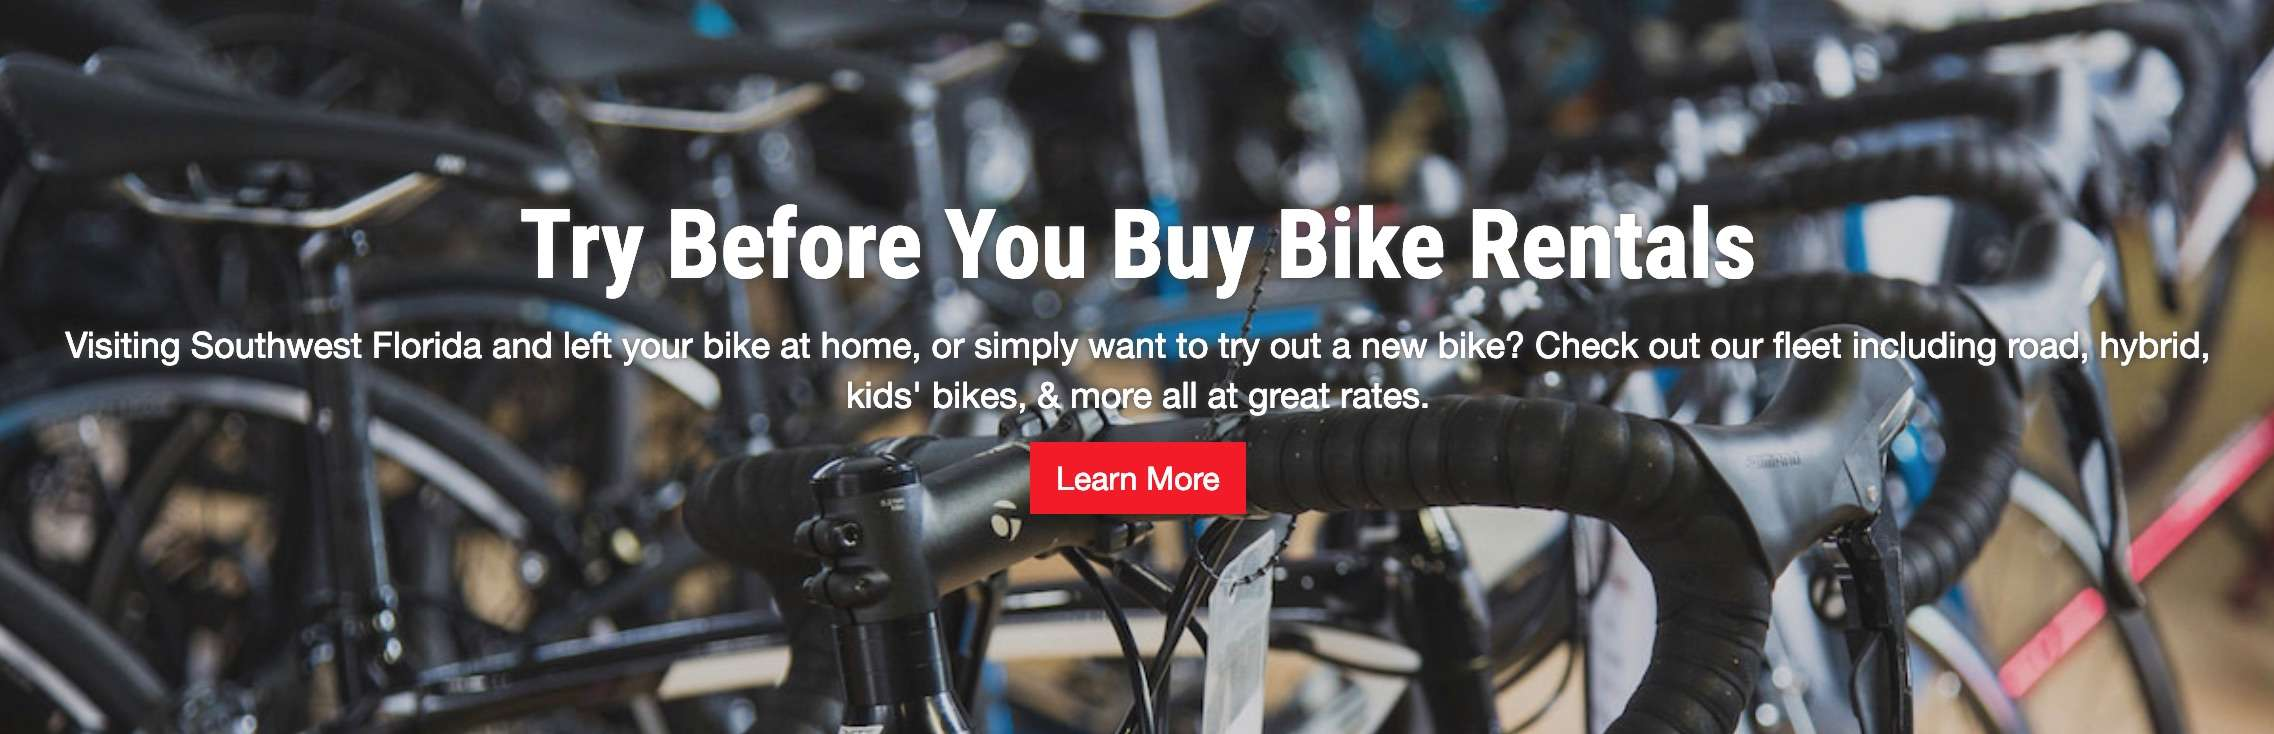 Try Before You Buy! Bike Rentals